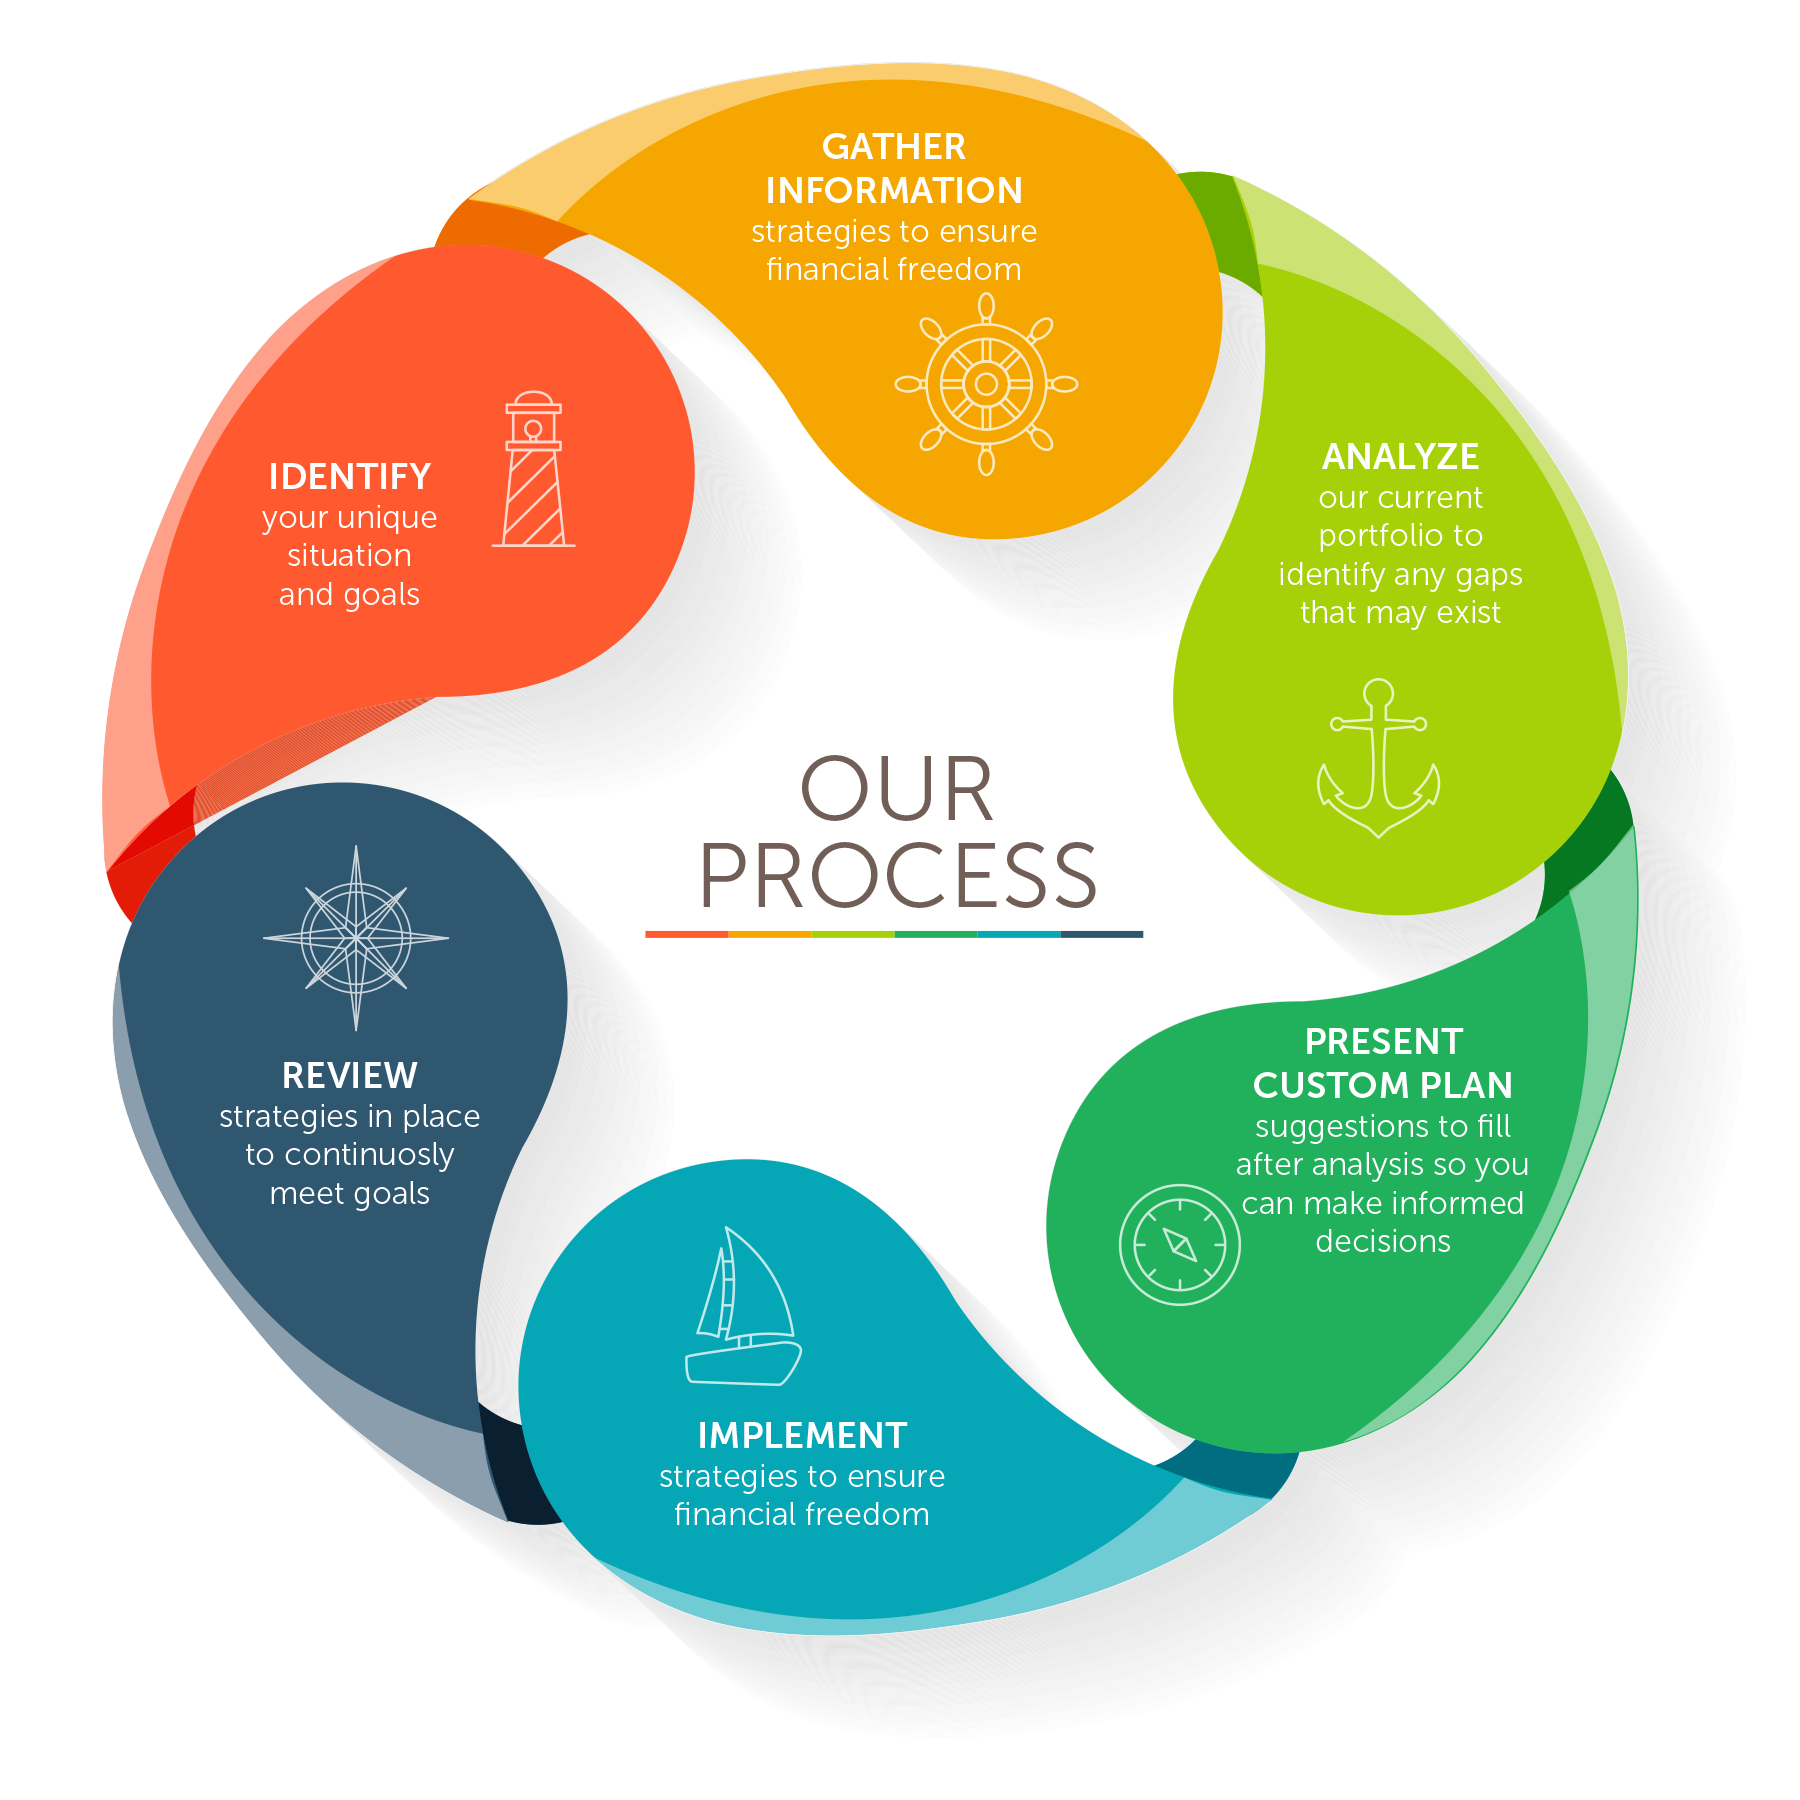 Our Solutions based Process includes: